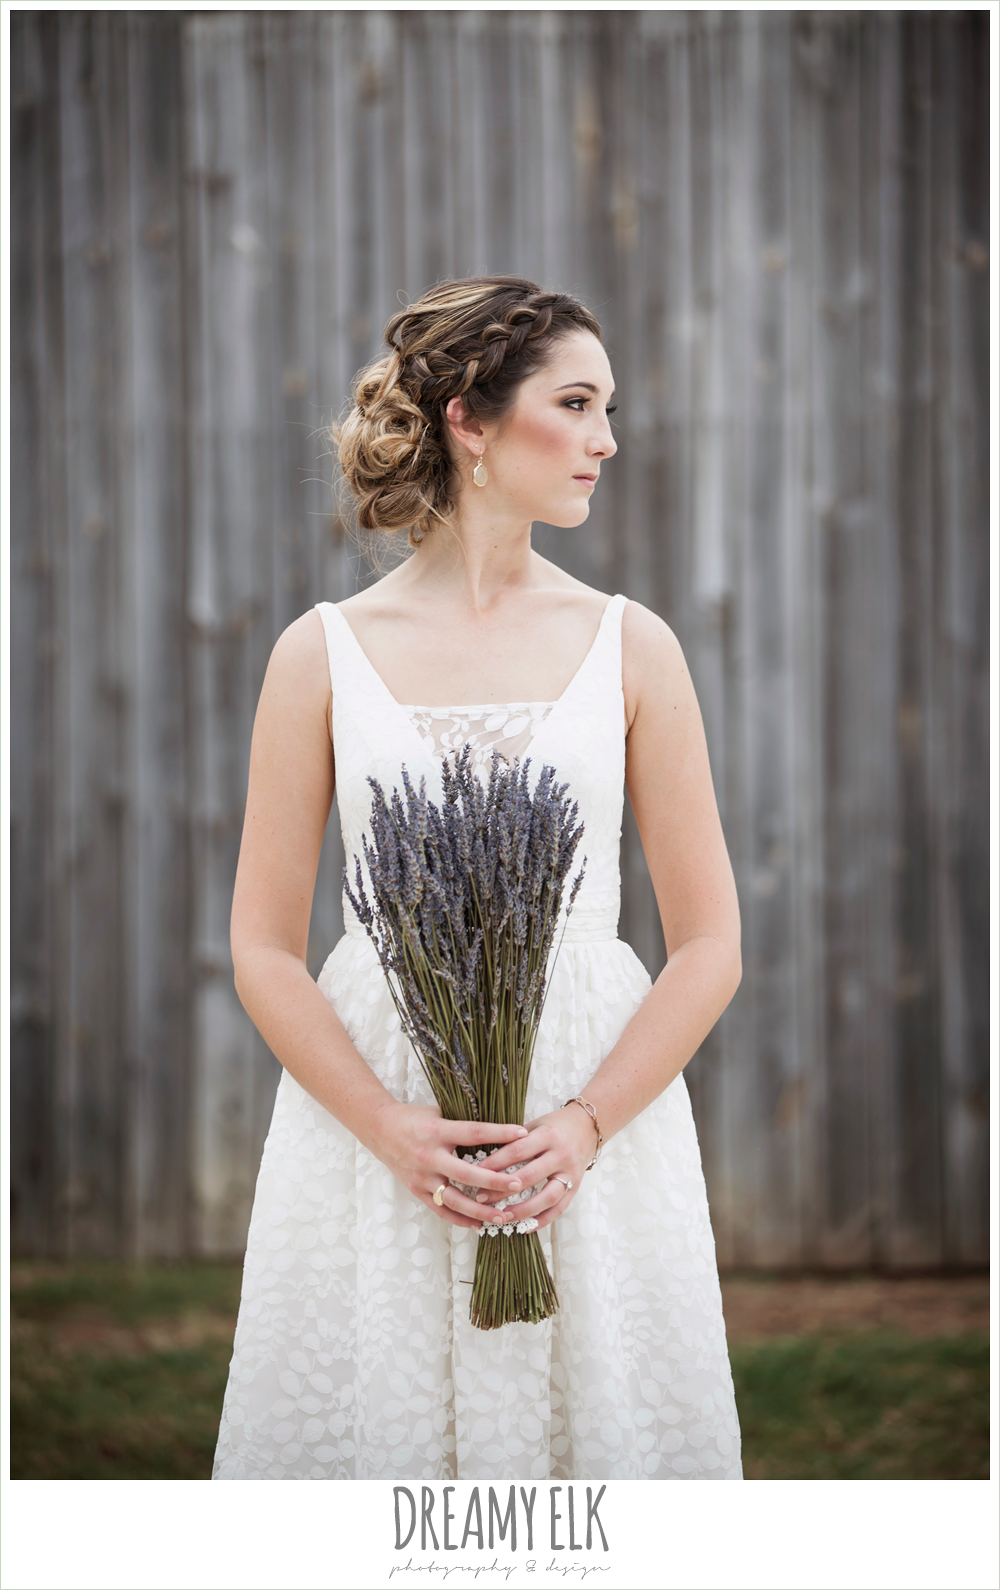 wedding hair updo with braid, country rustic bridal portrait, lavender wedding bouquet, the amish barn at edge {dreamy elk photography and design}